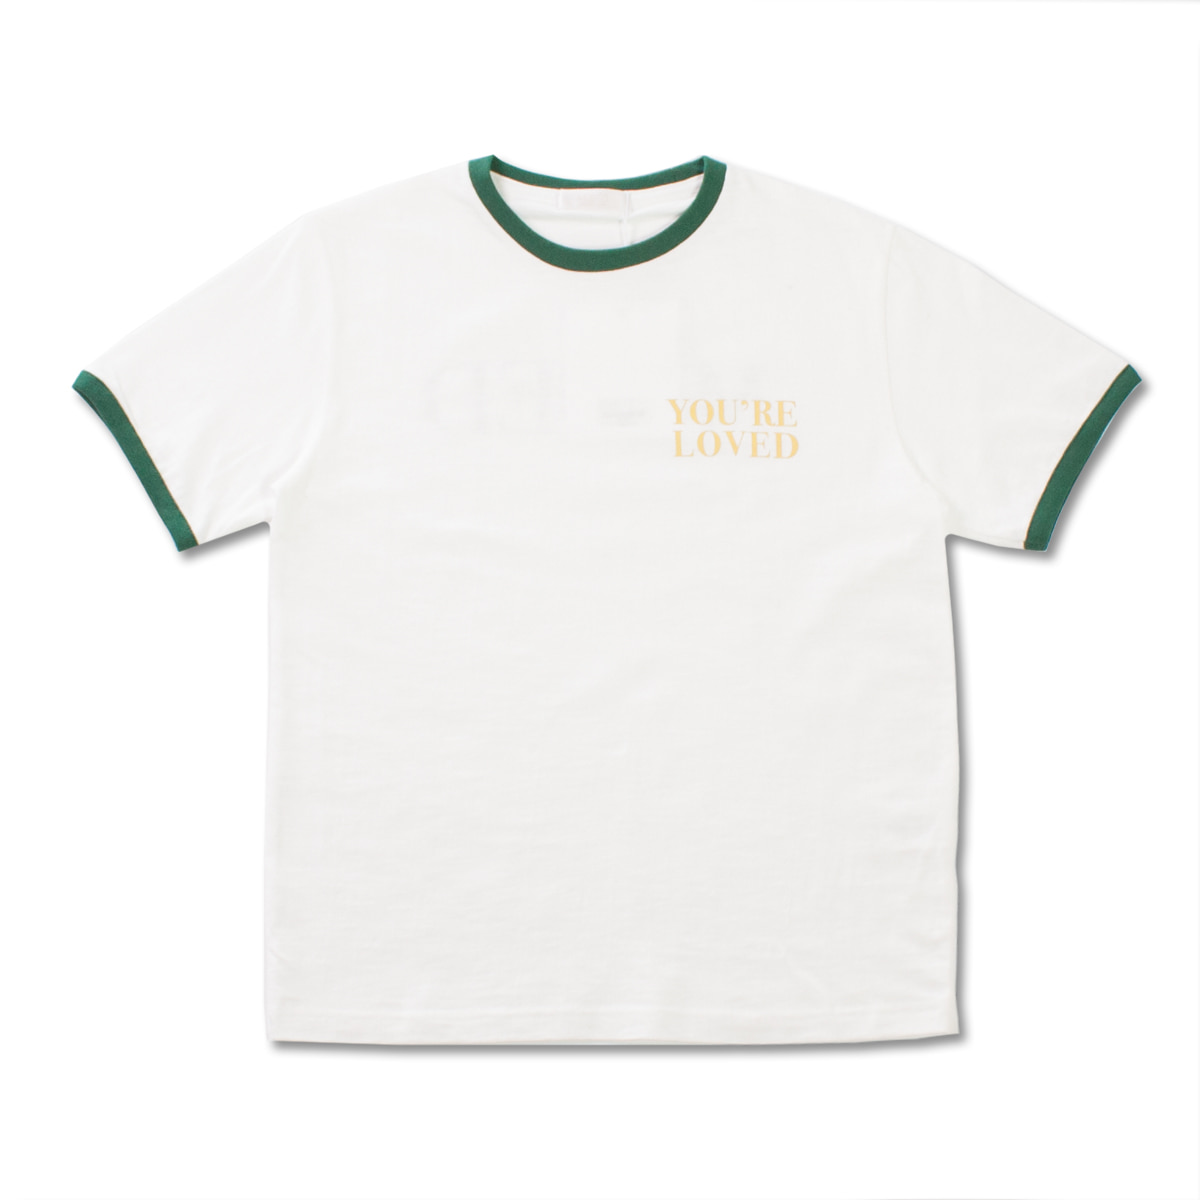 [MUSED] LOVED T-SHIRT 'WH+GREEN RIB'